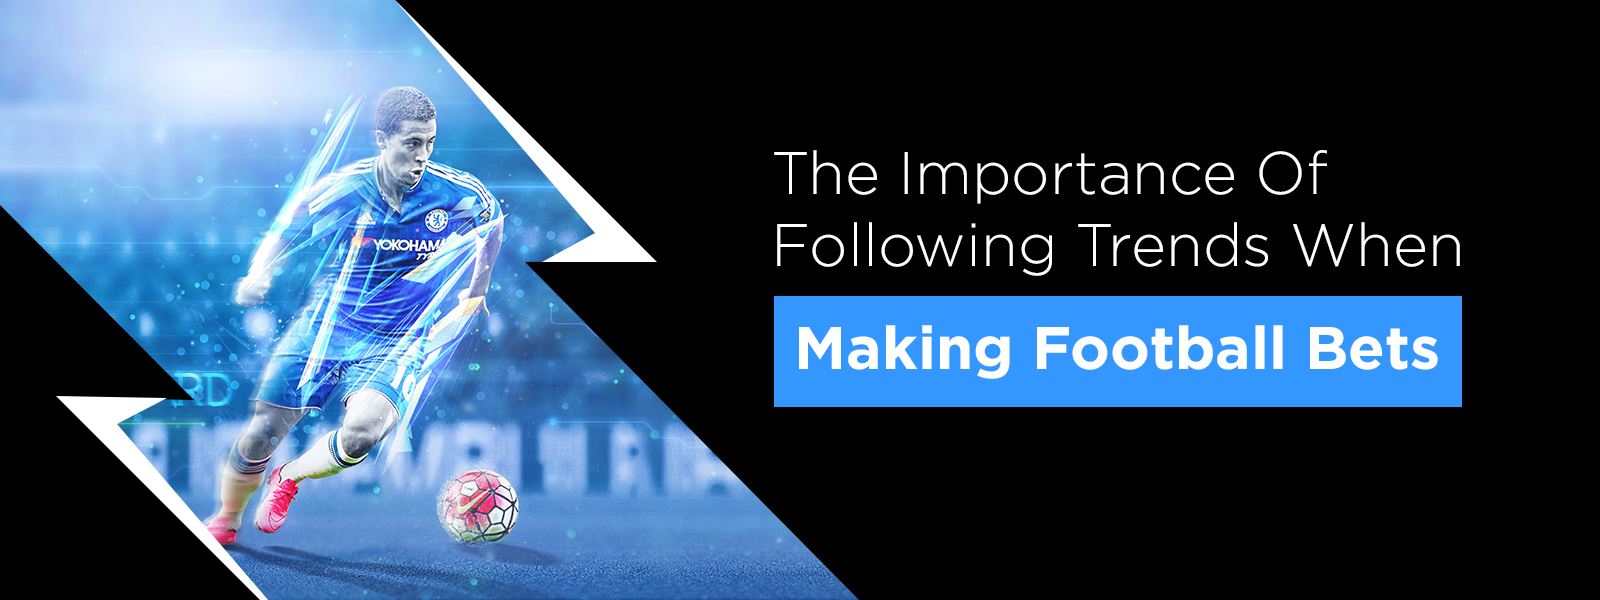 The Importance Of Following Betting Trends When Making Football Bets